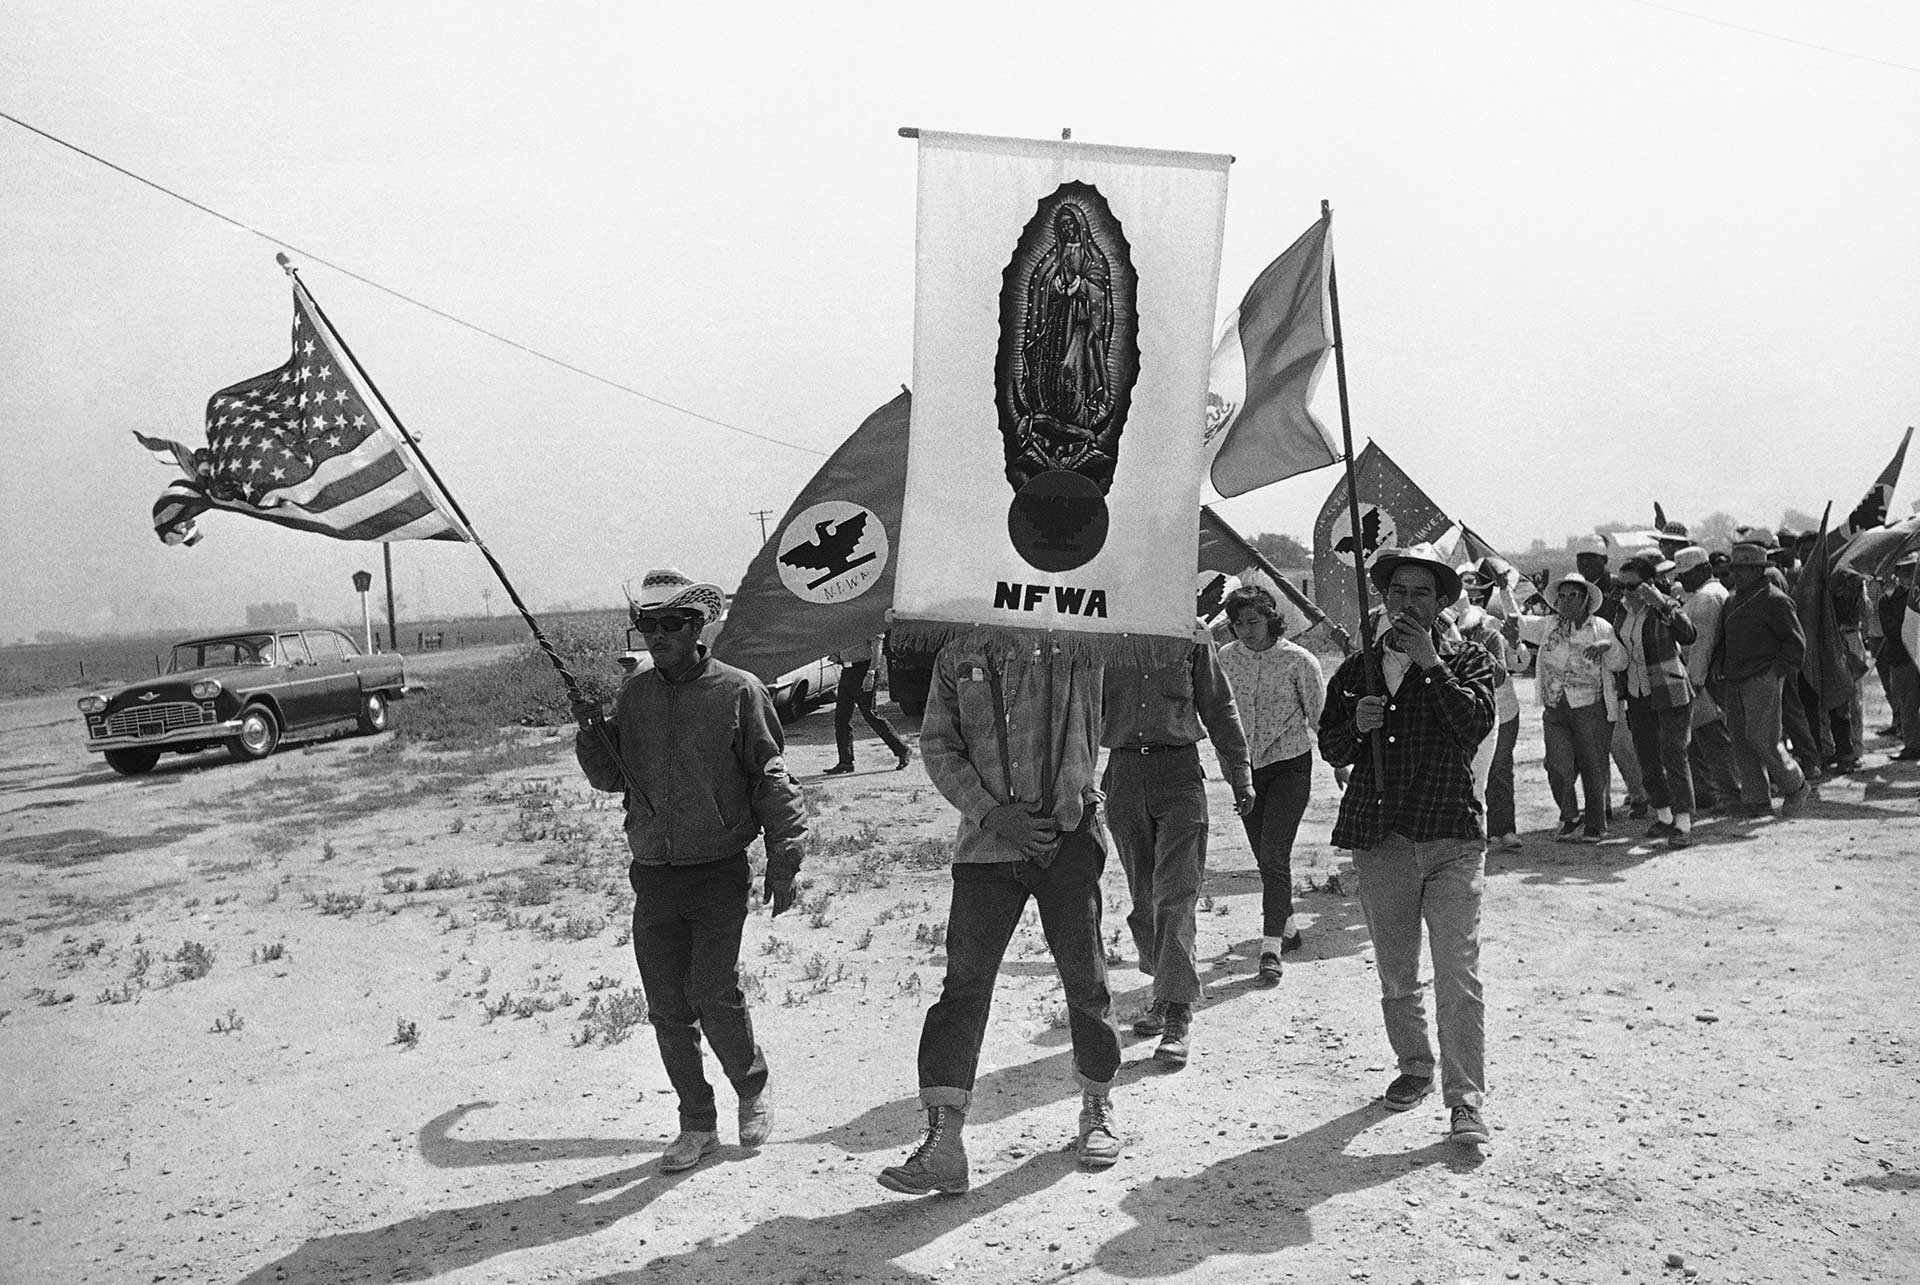 Delano grape workers' strike and march (1966)